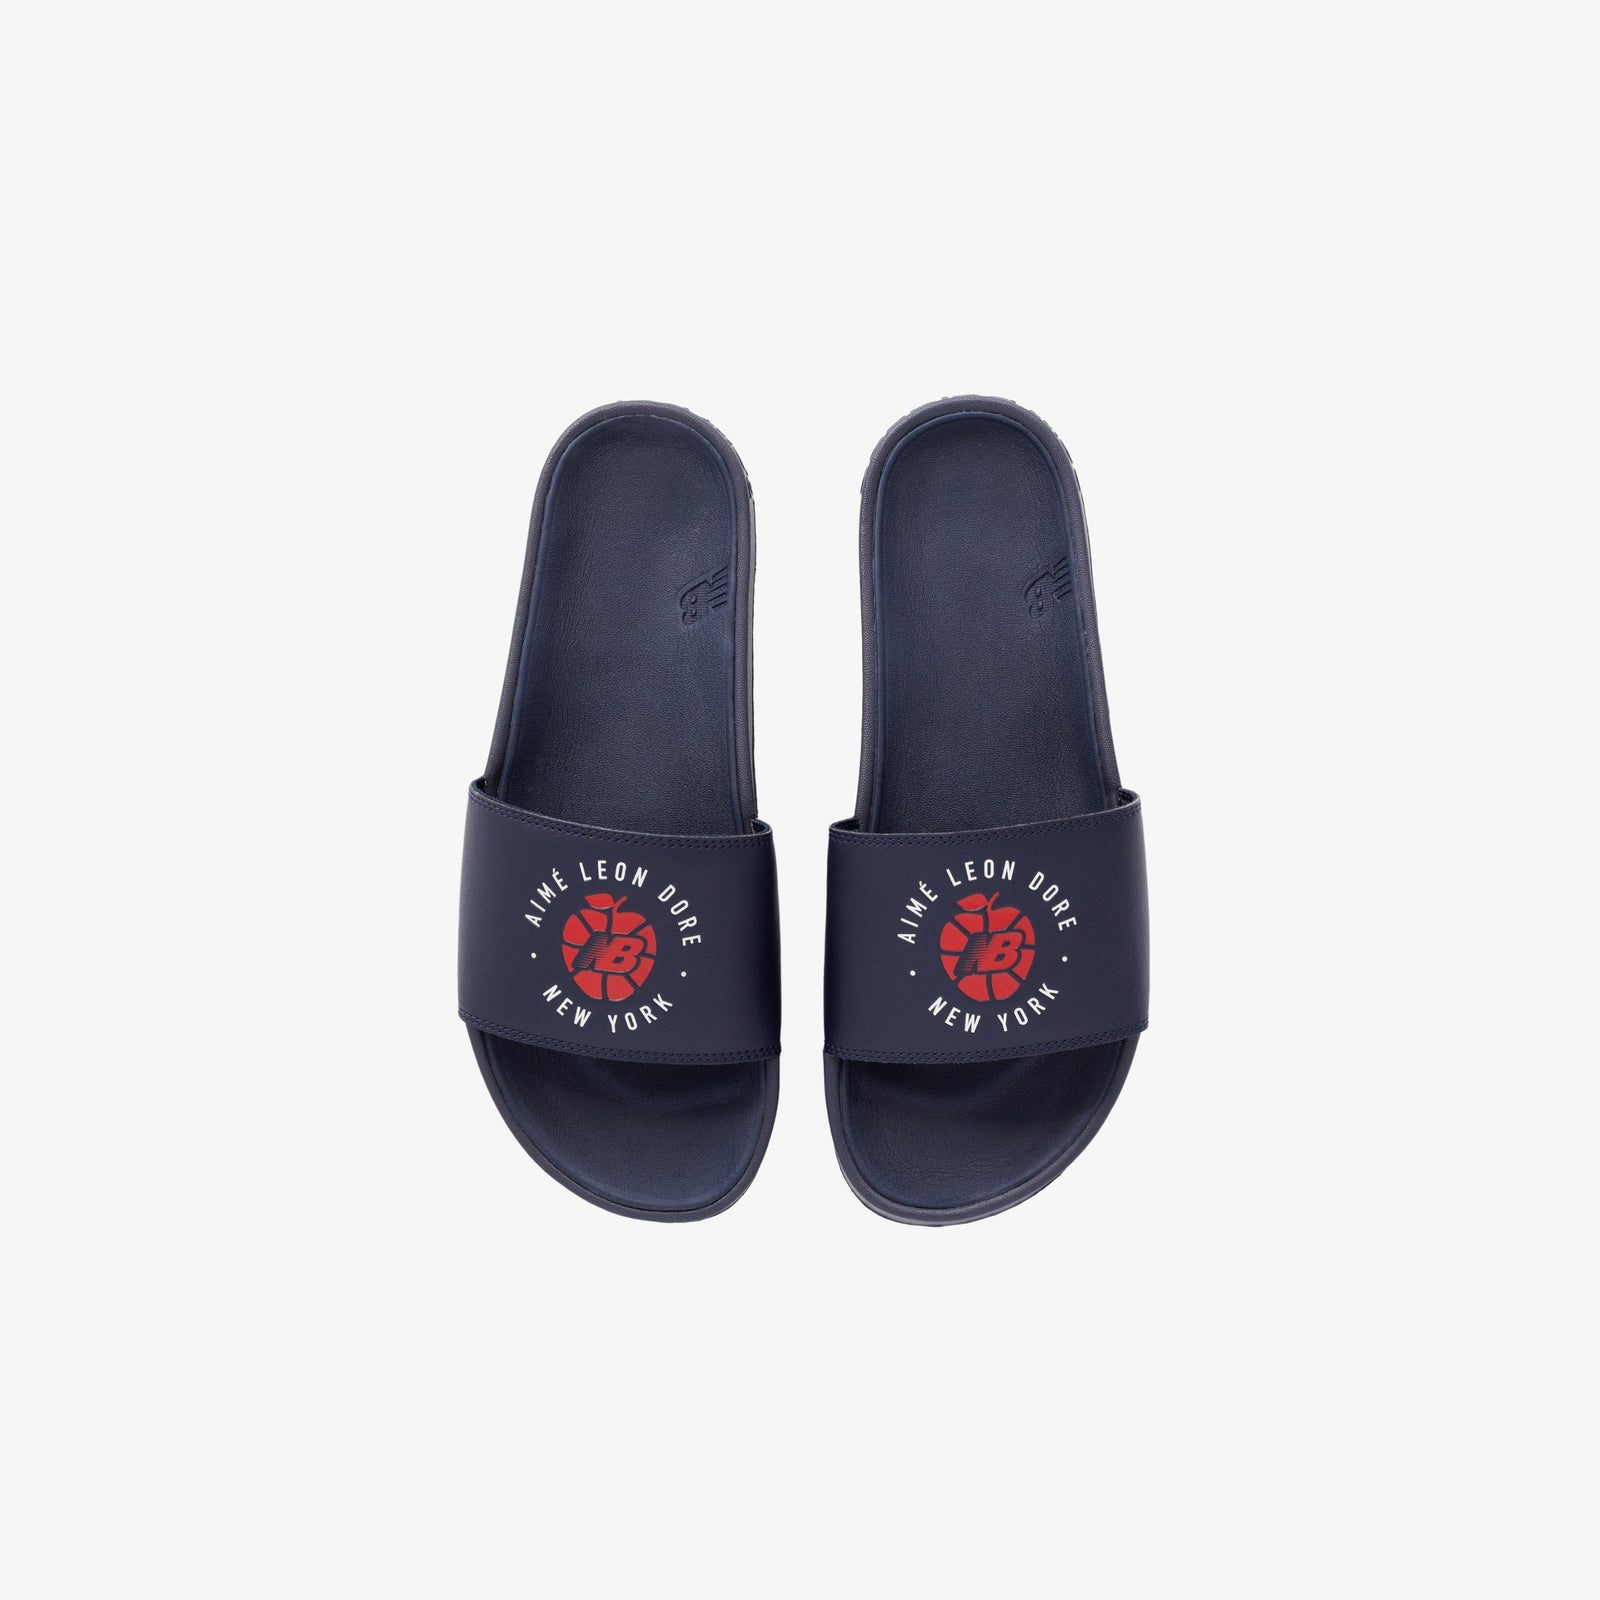 ALD / New Balance Slides